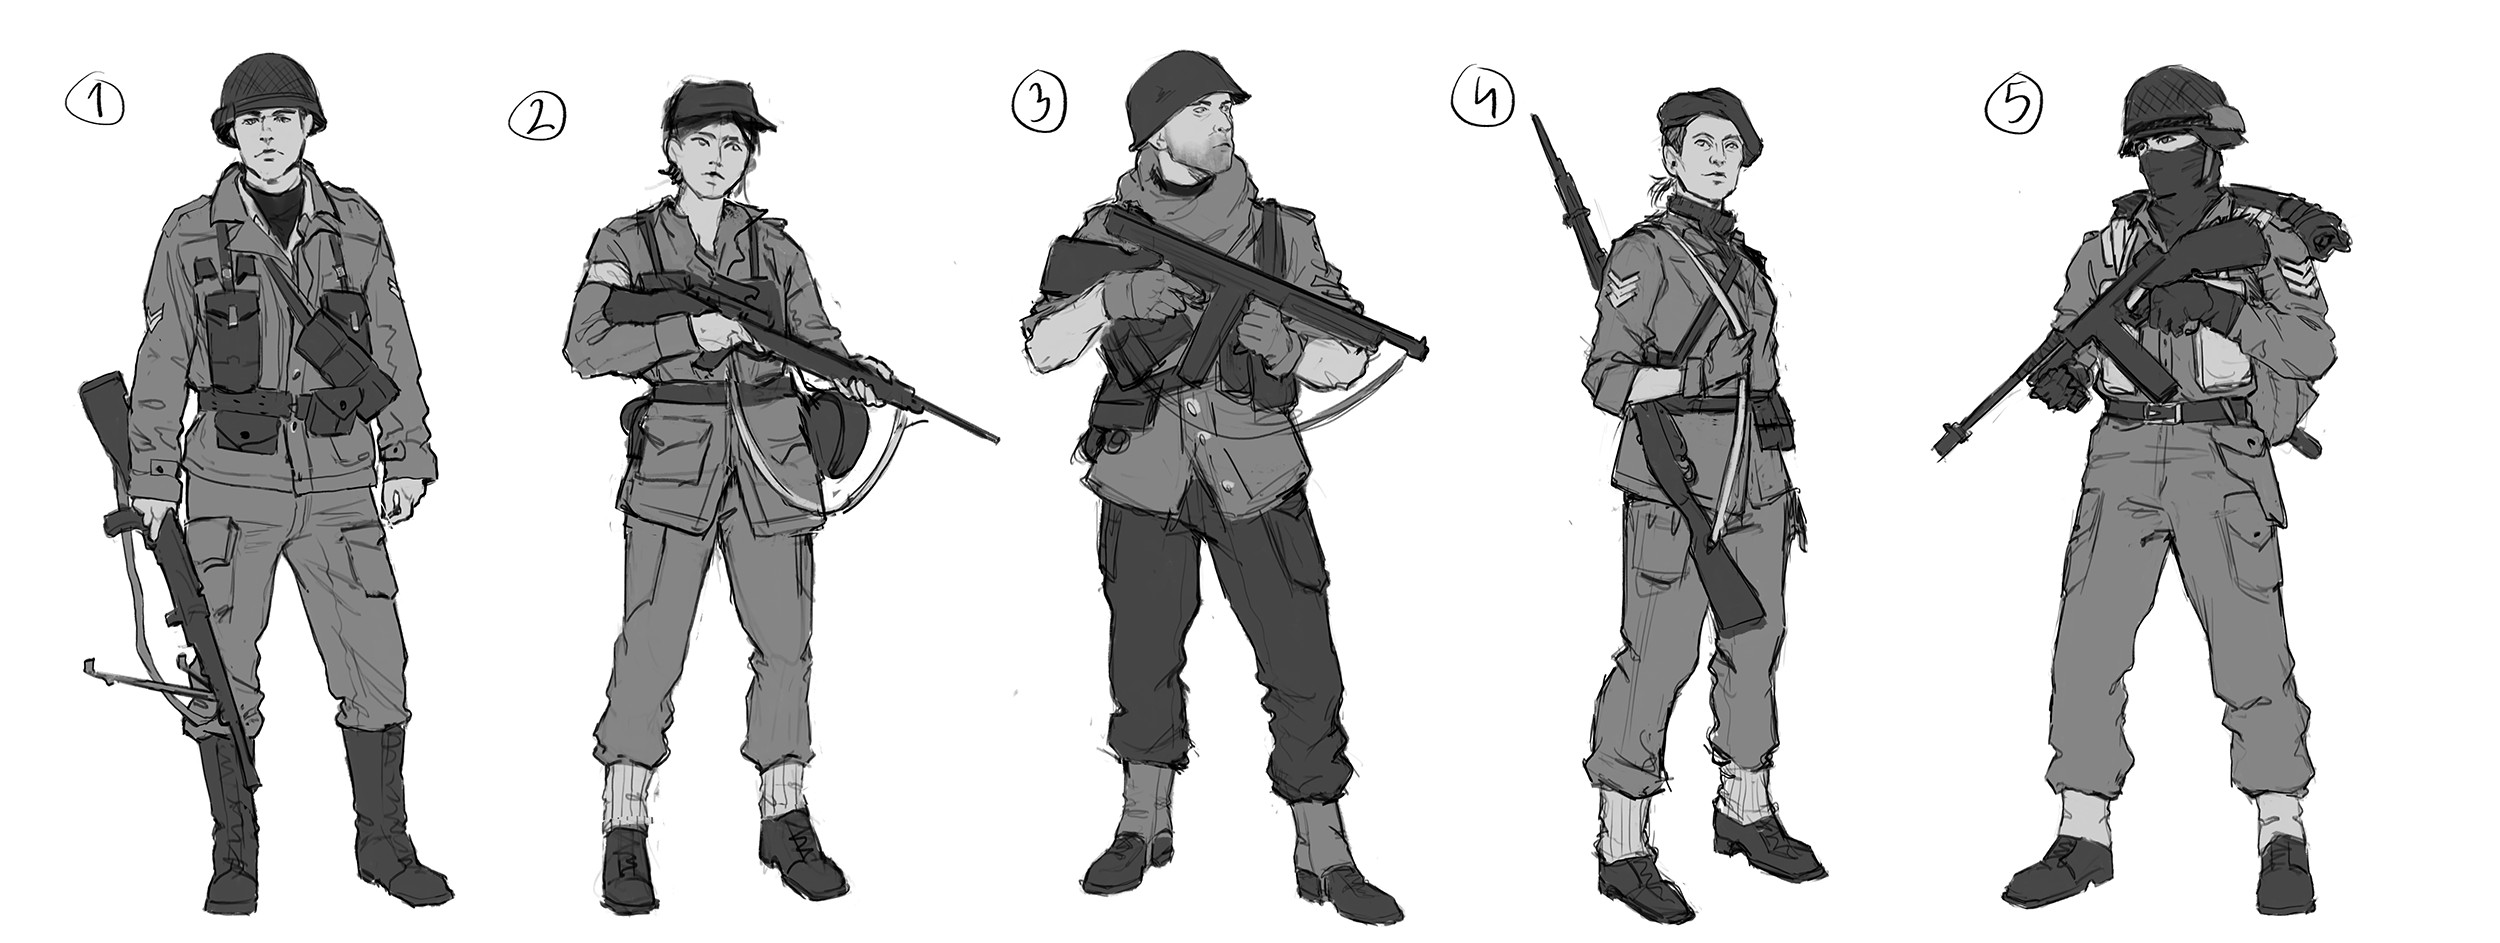 Sketches for the British soldiers. My goal with all of the thumbnails was to explore different ideas that I had, and not get stuck with the first sketch.